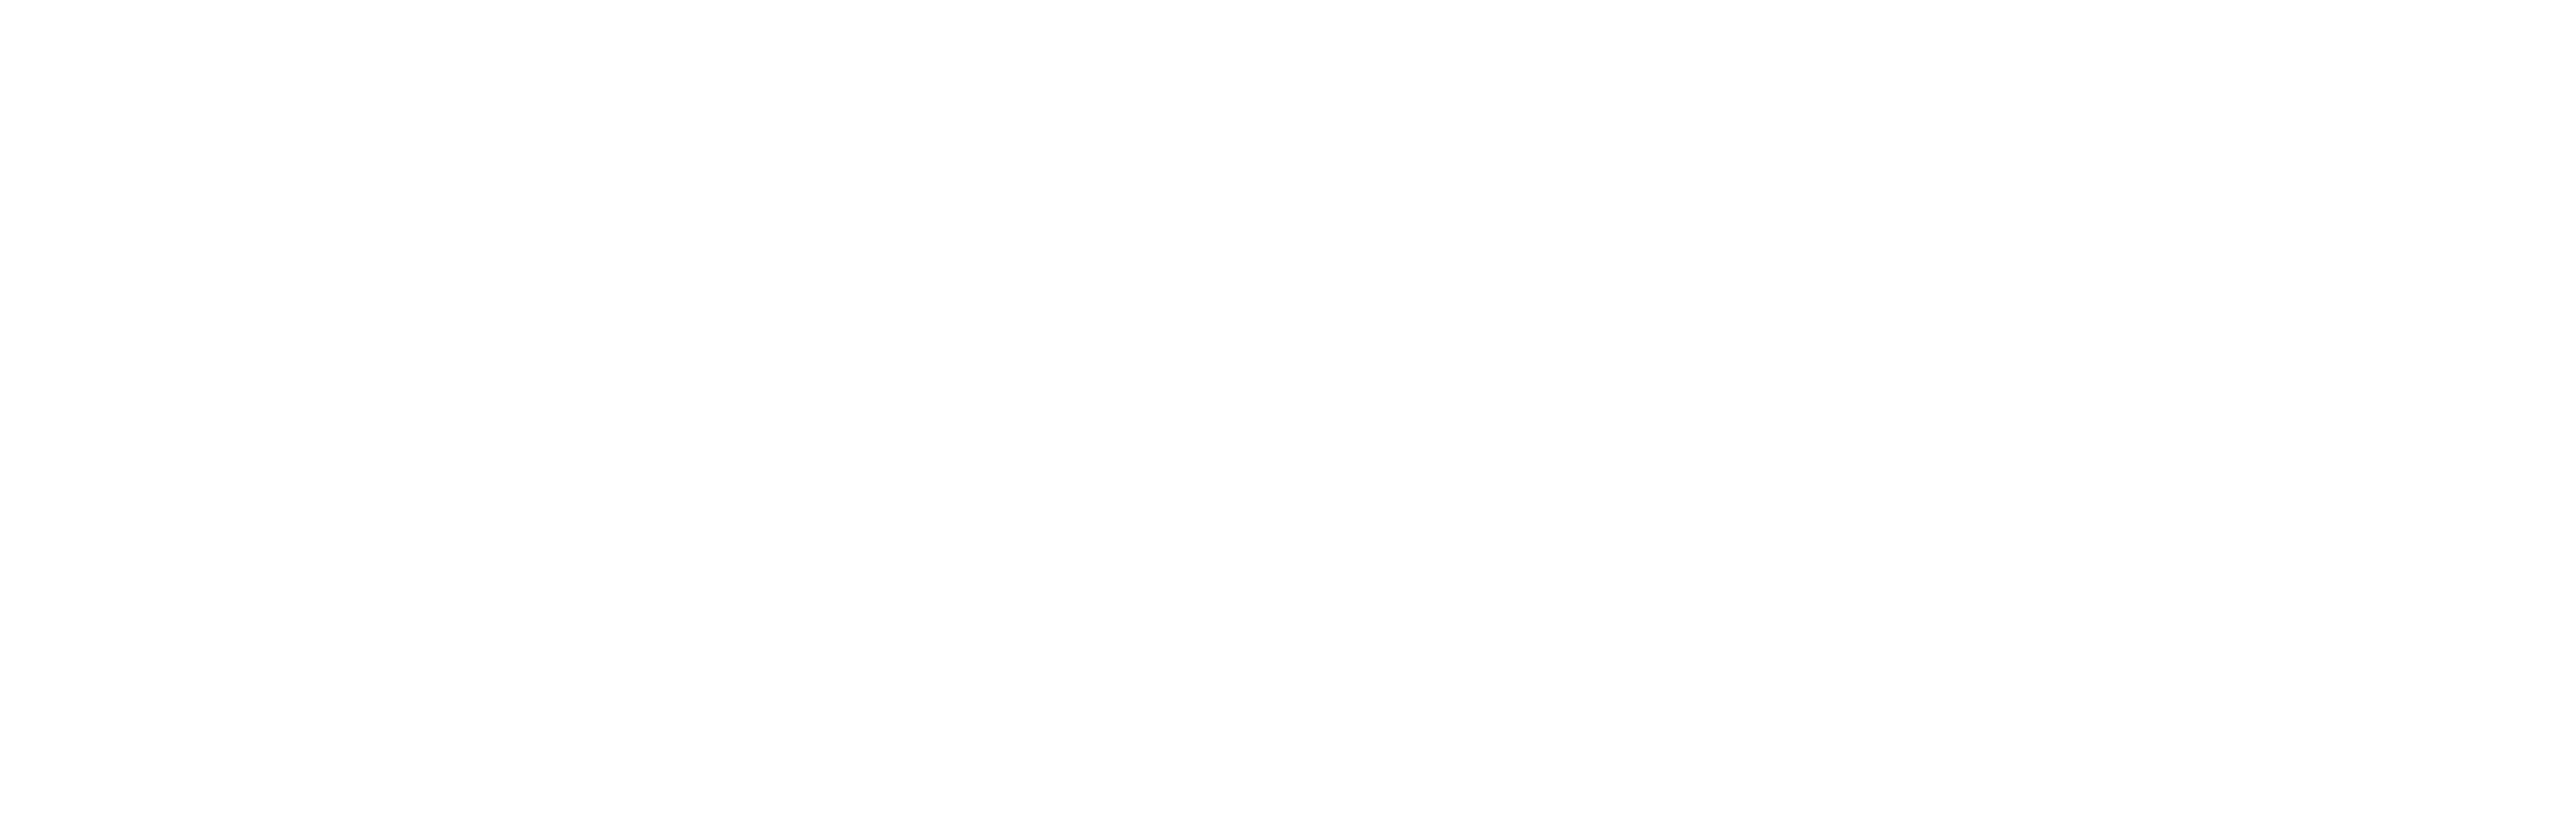 Salinas Floral & Gifts - Flower Delivery in Salinas, CA